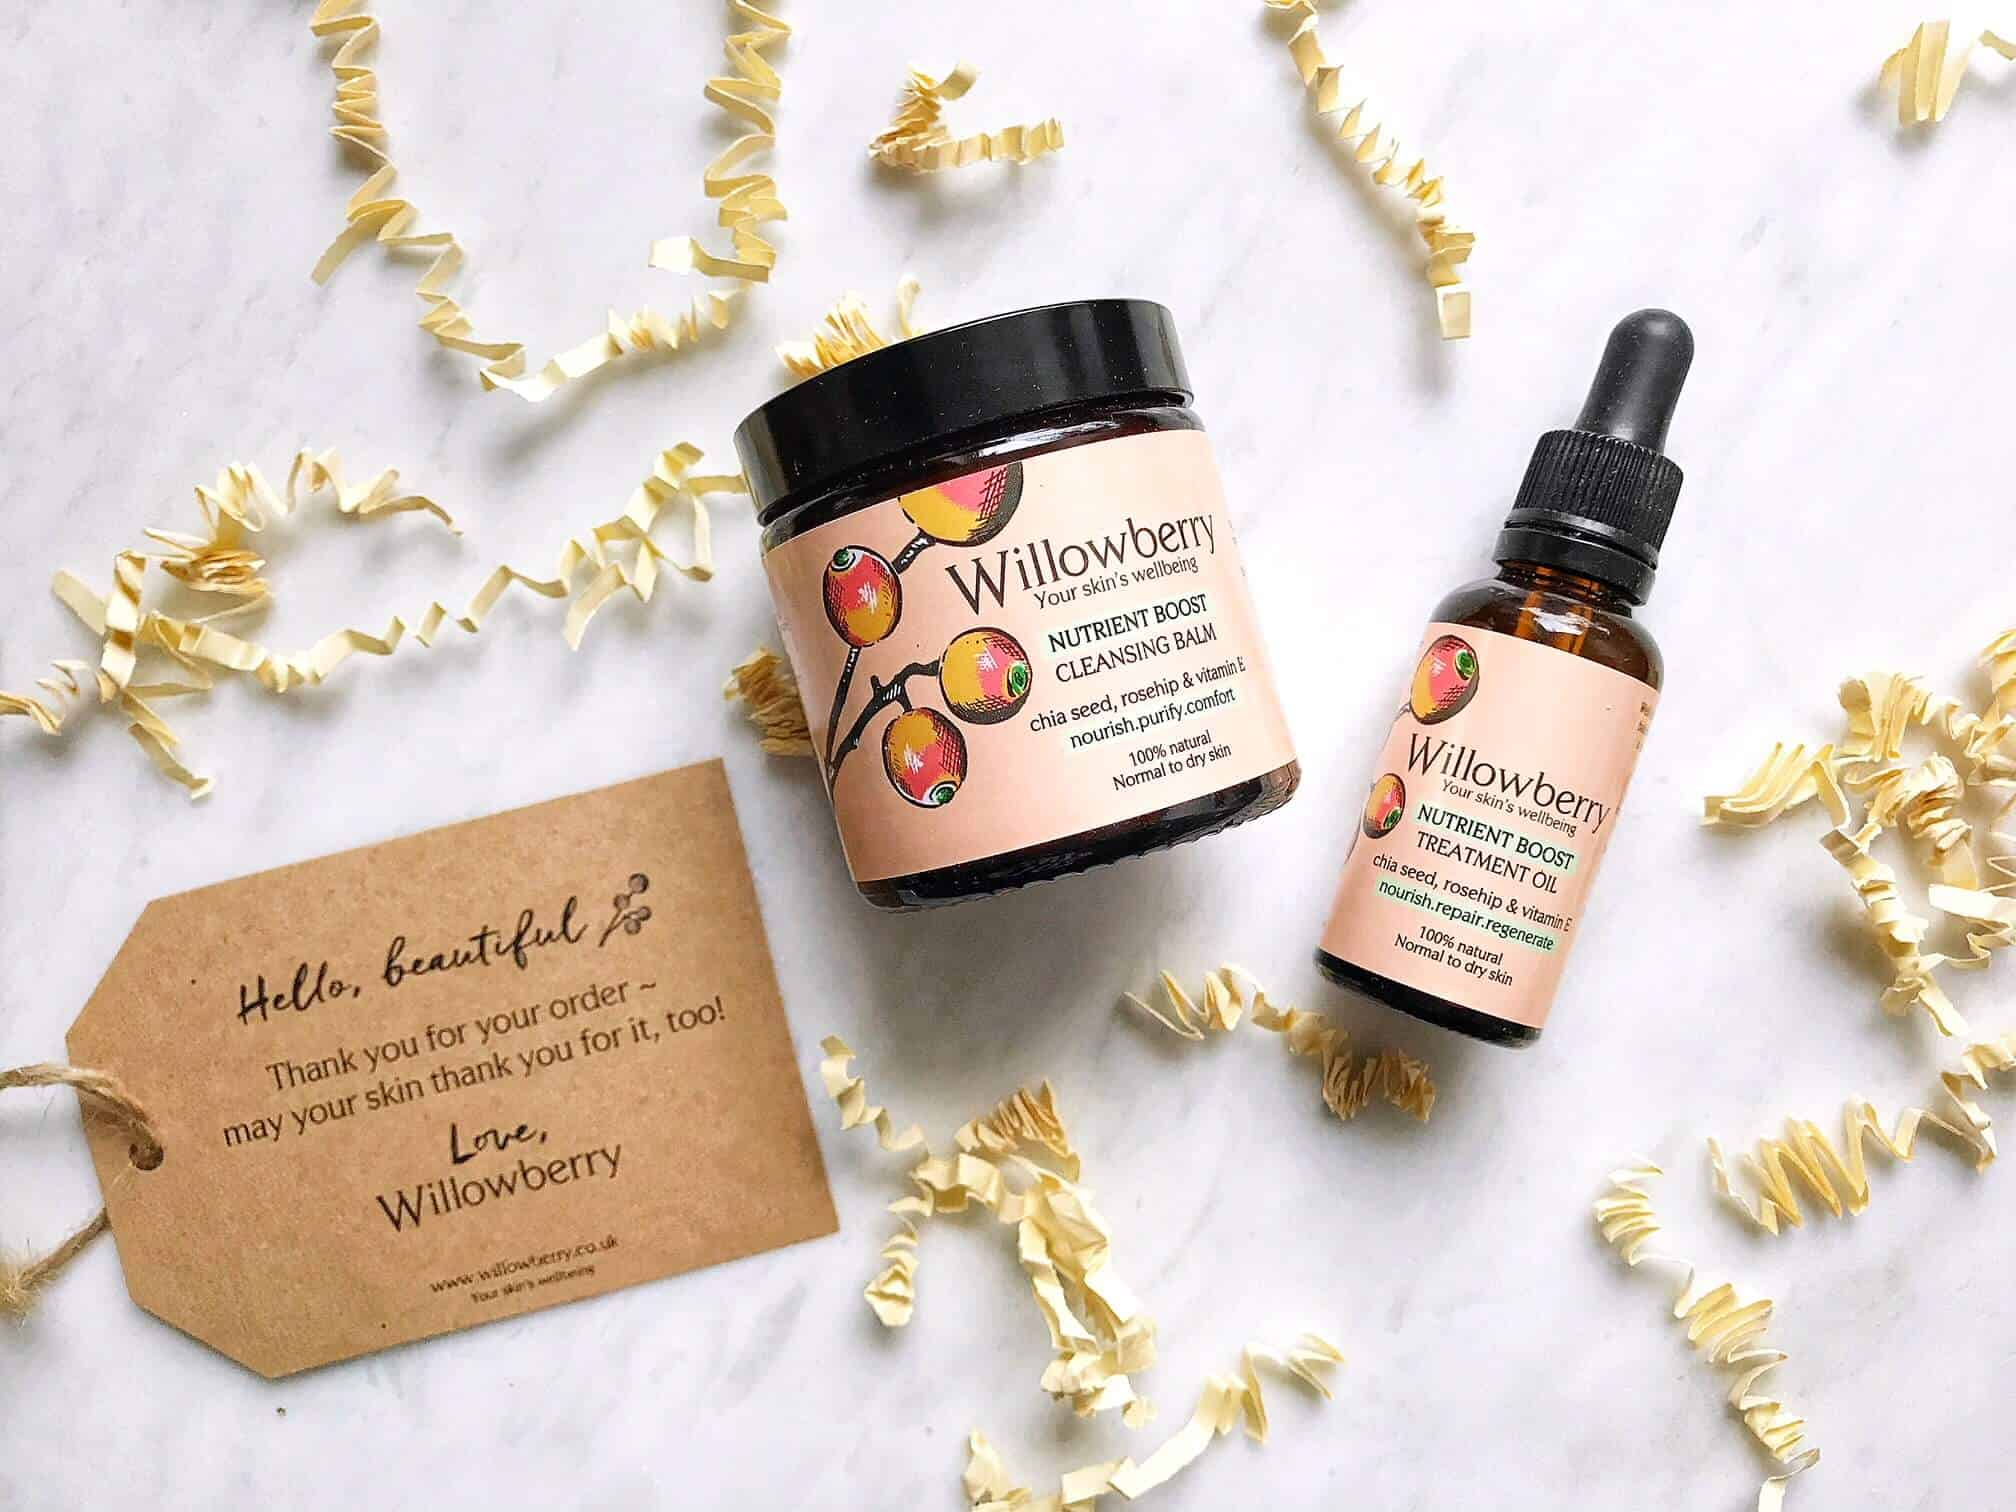 Willowberry Natural Skincare Review